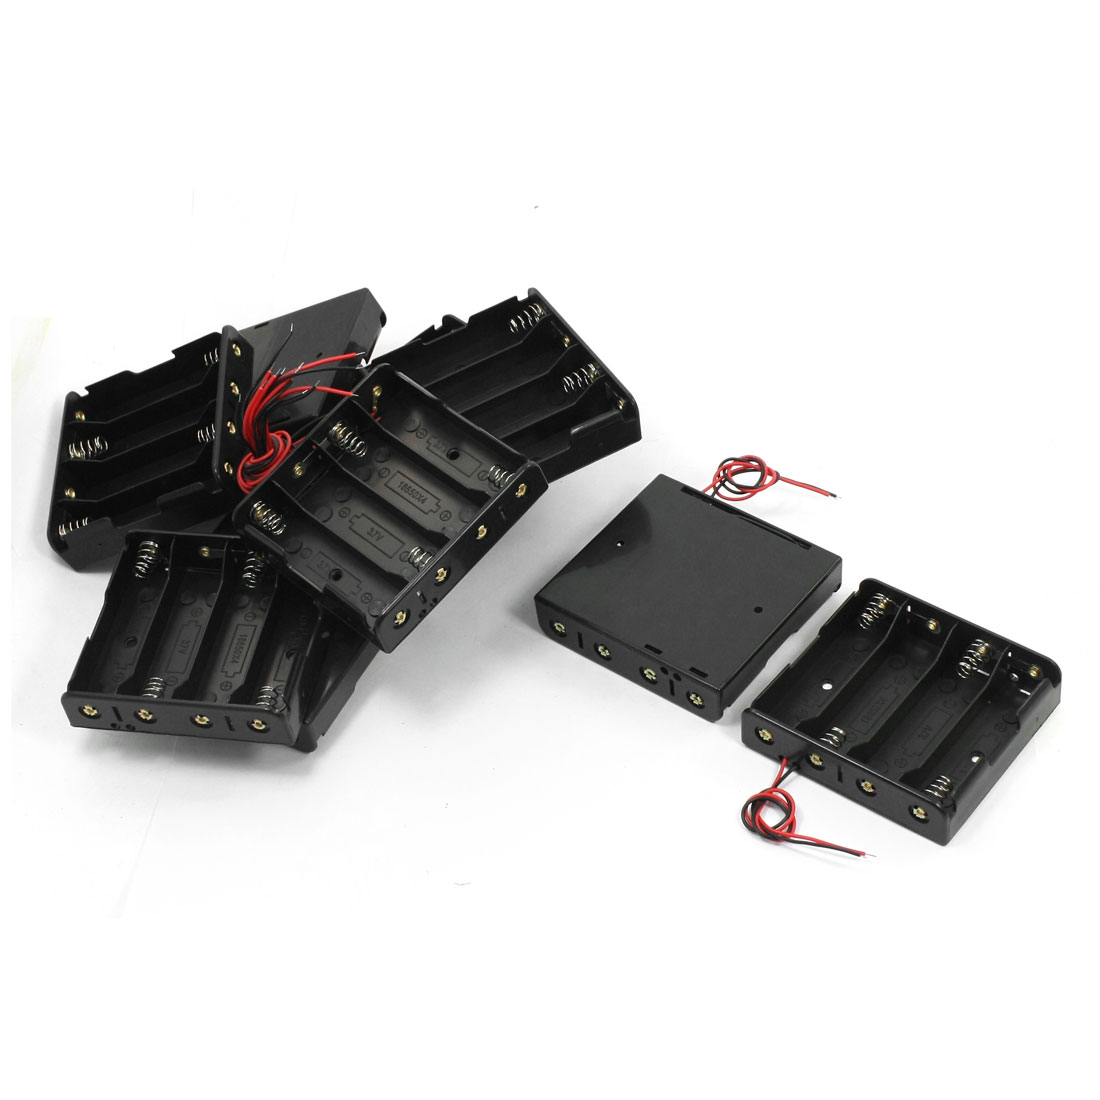 10 Pcs Open Frame Double Wire Plastic Shell 4 x 3.7V 18650 Batteries Holder Case Storage Box Container